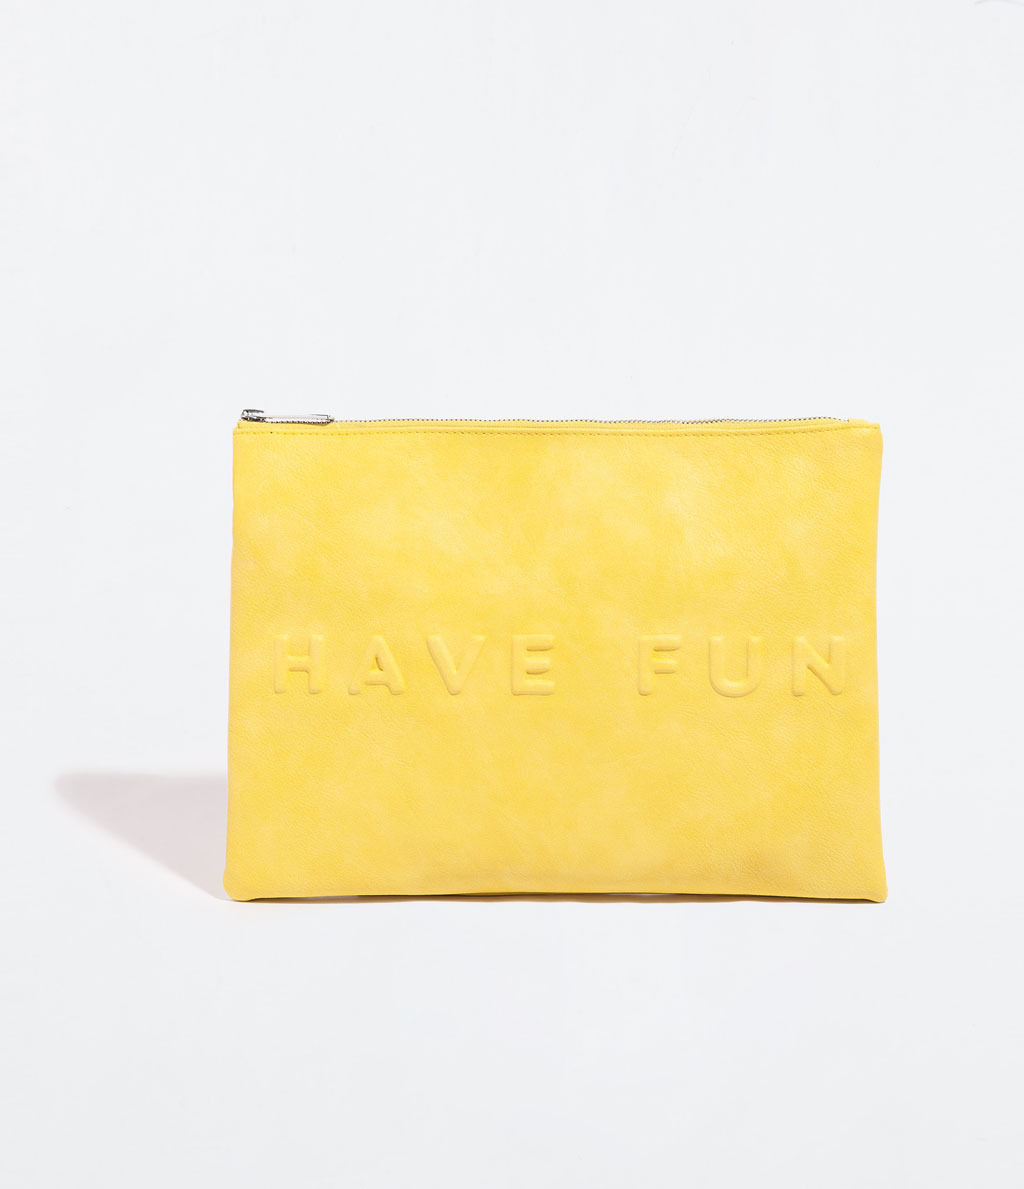 Leather Pouch - predominant colour: primrose yellow; occasions: casual, evening, holiday, creative work; type of pattern: light; style: clutch; length: hand carry; size: standard; material: leather; finish: plain; pattern: patterned/print; trends: sorbet shades, logos; season: s/s 2014